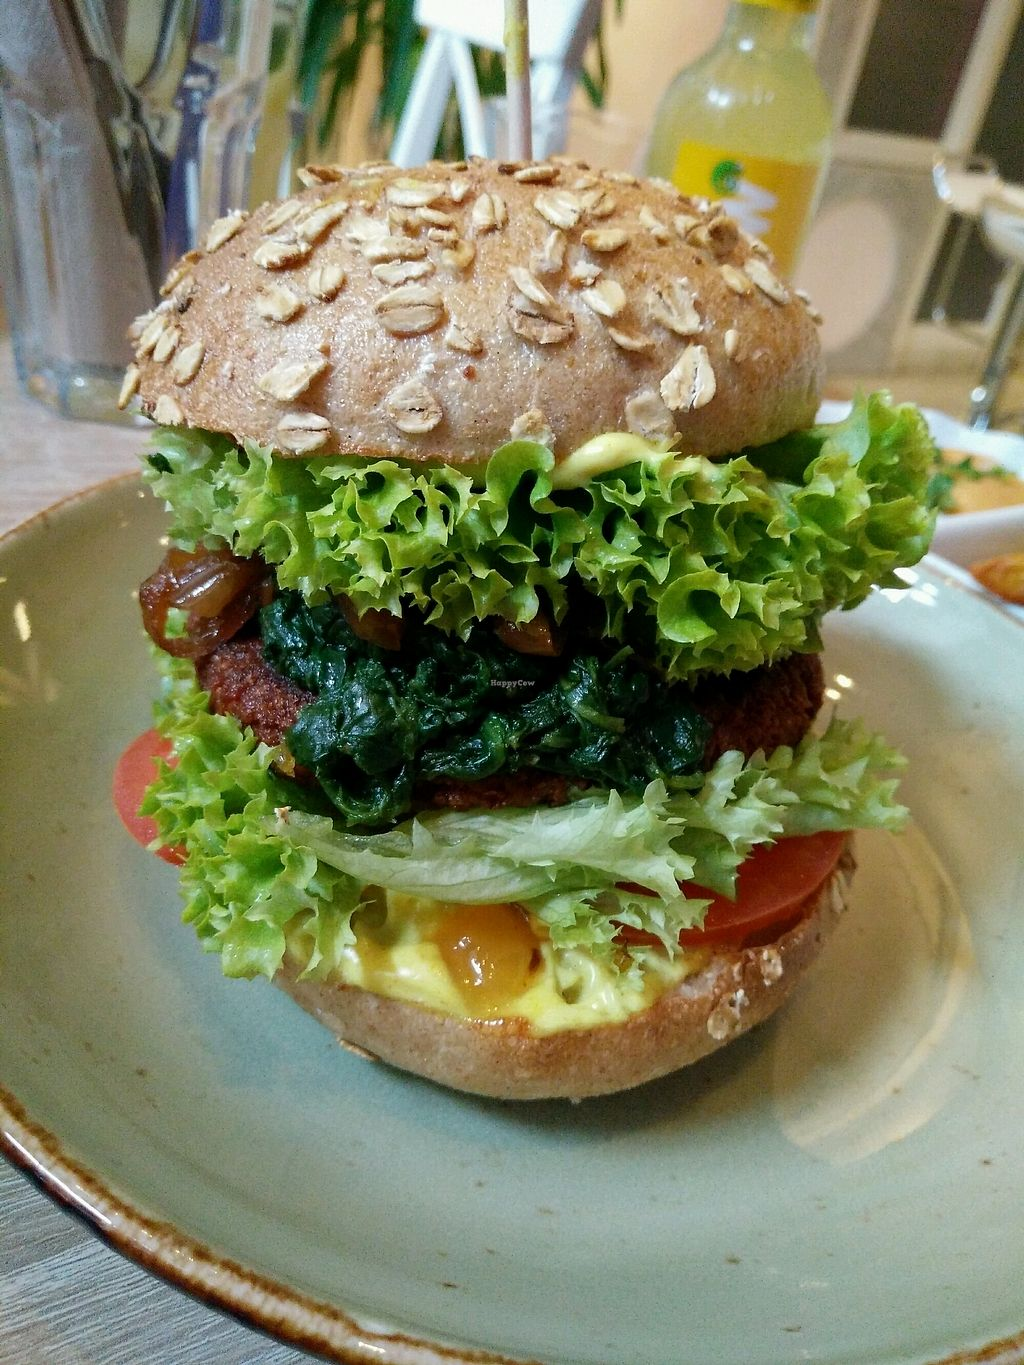 """Photo of My Heart Beats Vegan  by <a href=""""/members/profile/AnnaJohnson"""">AnnaJohnson</a> <br/>Bombay Burger mit Mango chutney, Currycreme und gedünstetem Spinat  <br/> March 3, 2018  - <a href='/contact/abuse/image/53725/366279'>Report</a>"""